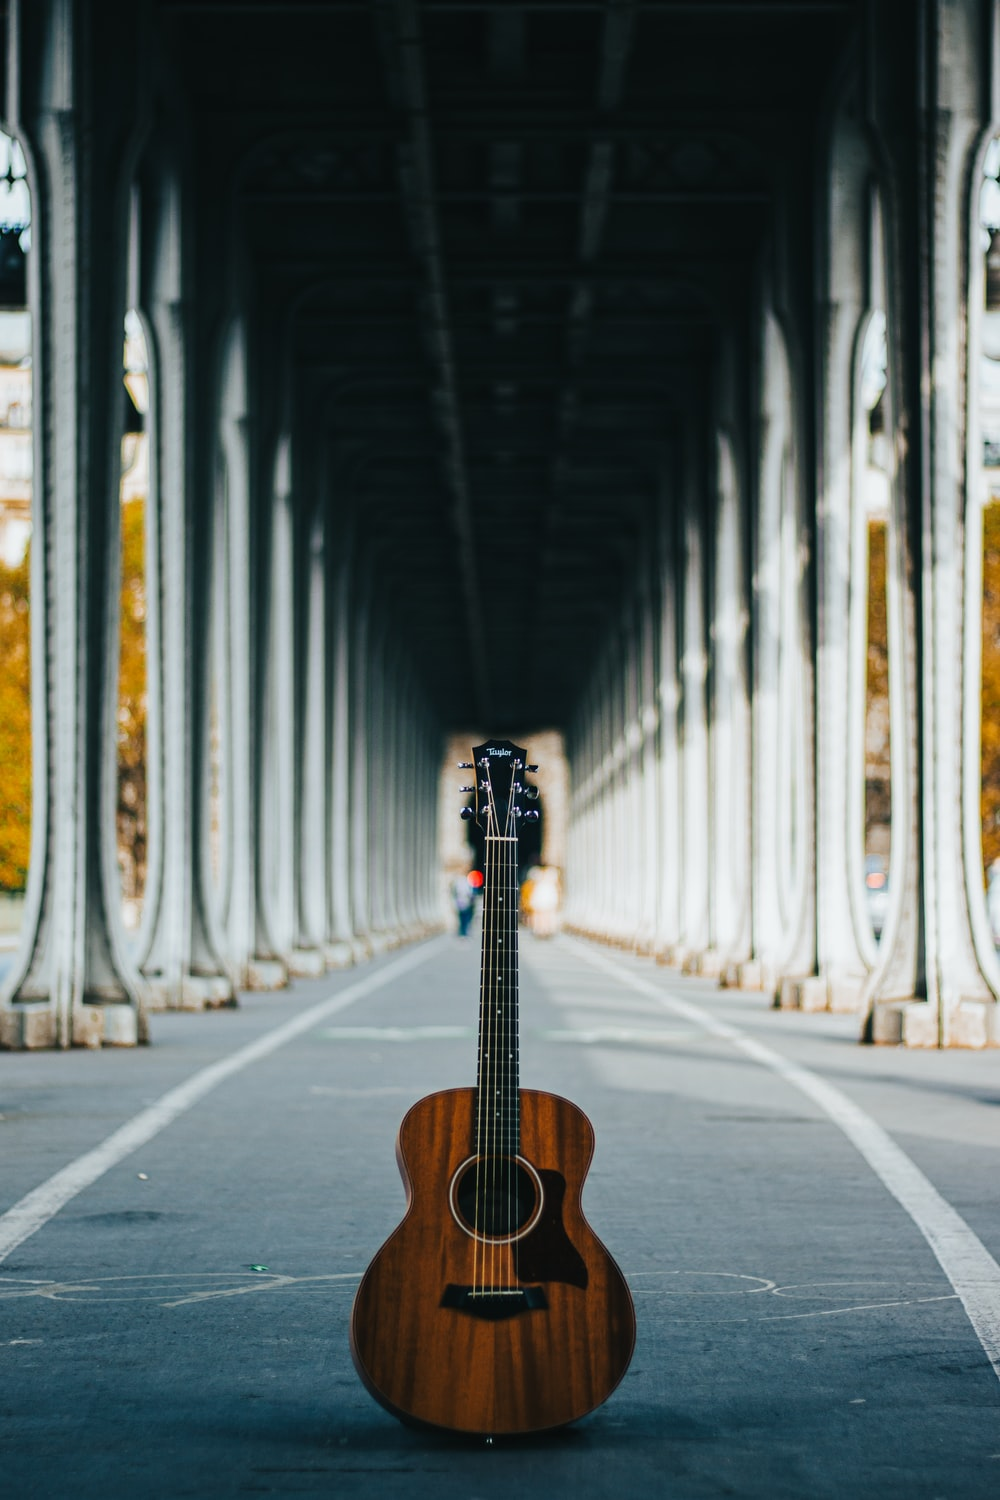 brown acoustic guitar on the street